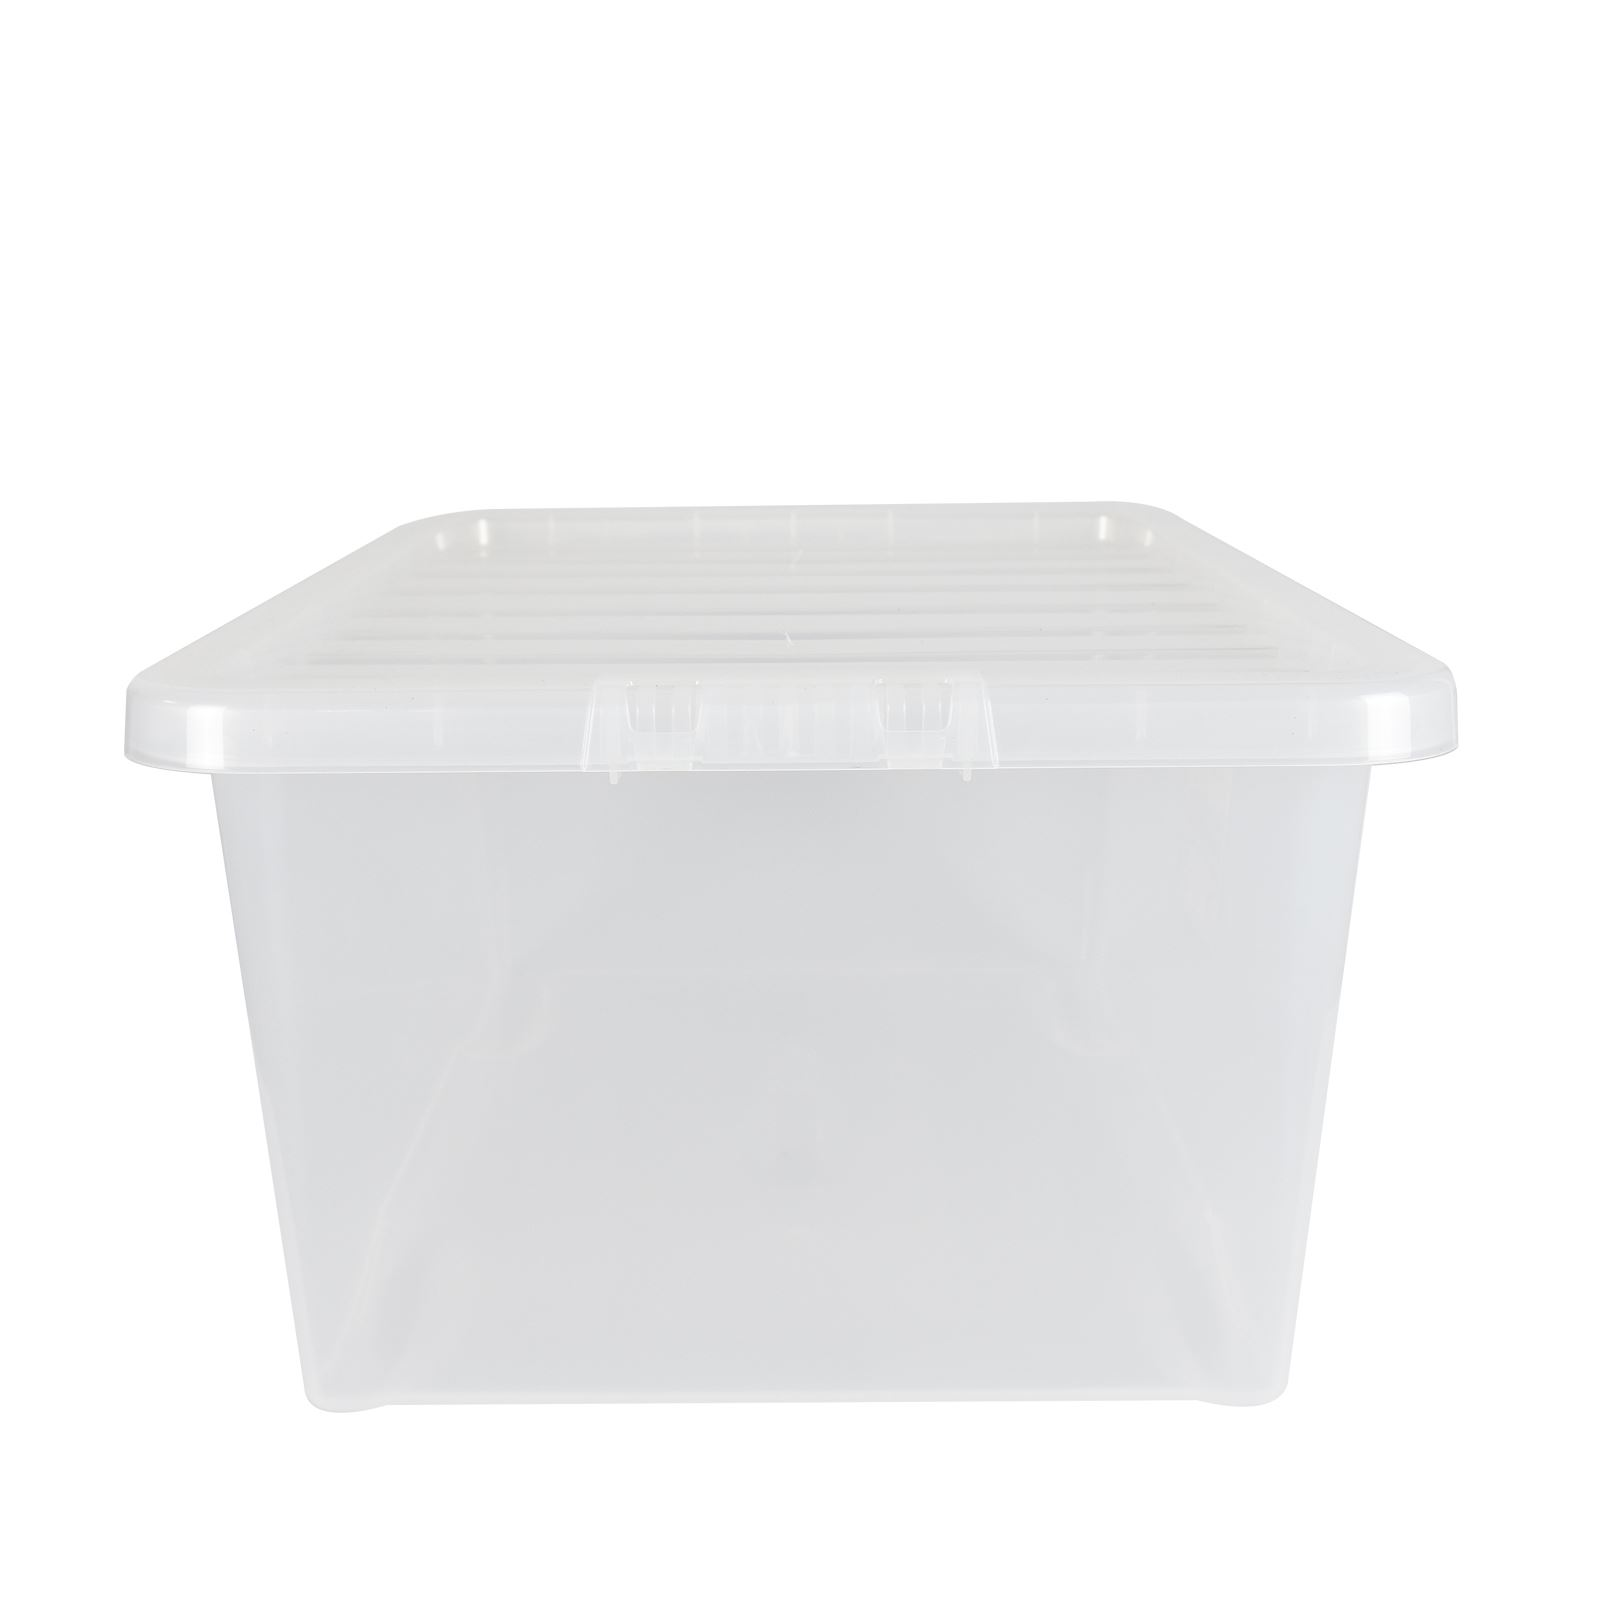 Wham-Crystal-Clear-Plastic-Storage-Box-Secure-Clip-on-Lid-Under-Bed-Space-Save thumbnail 39